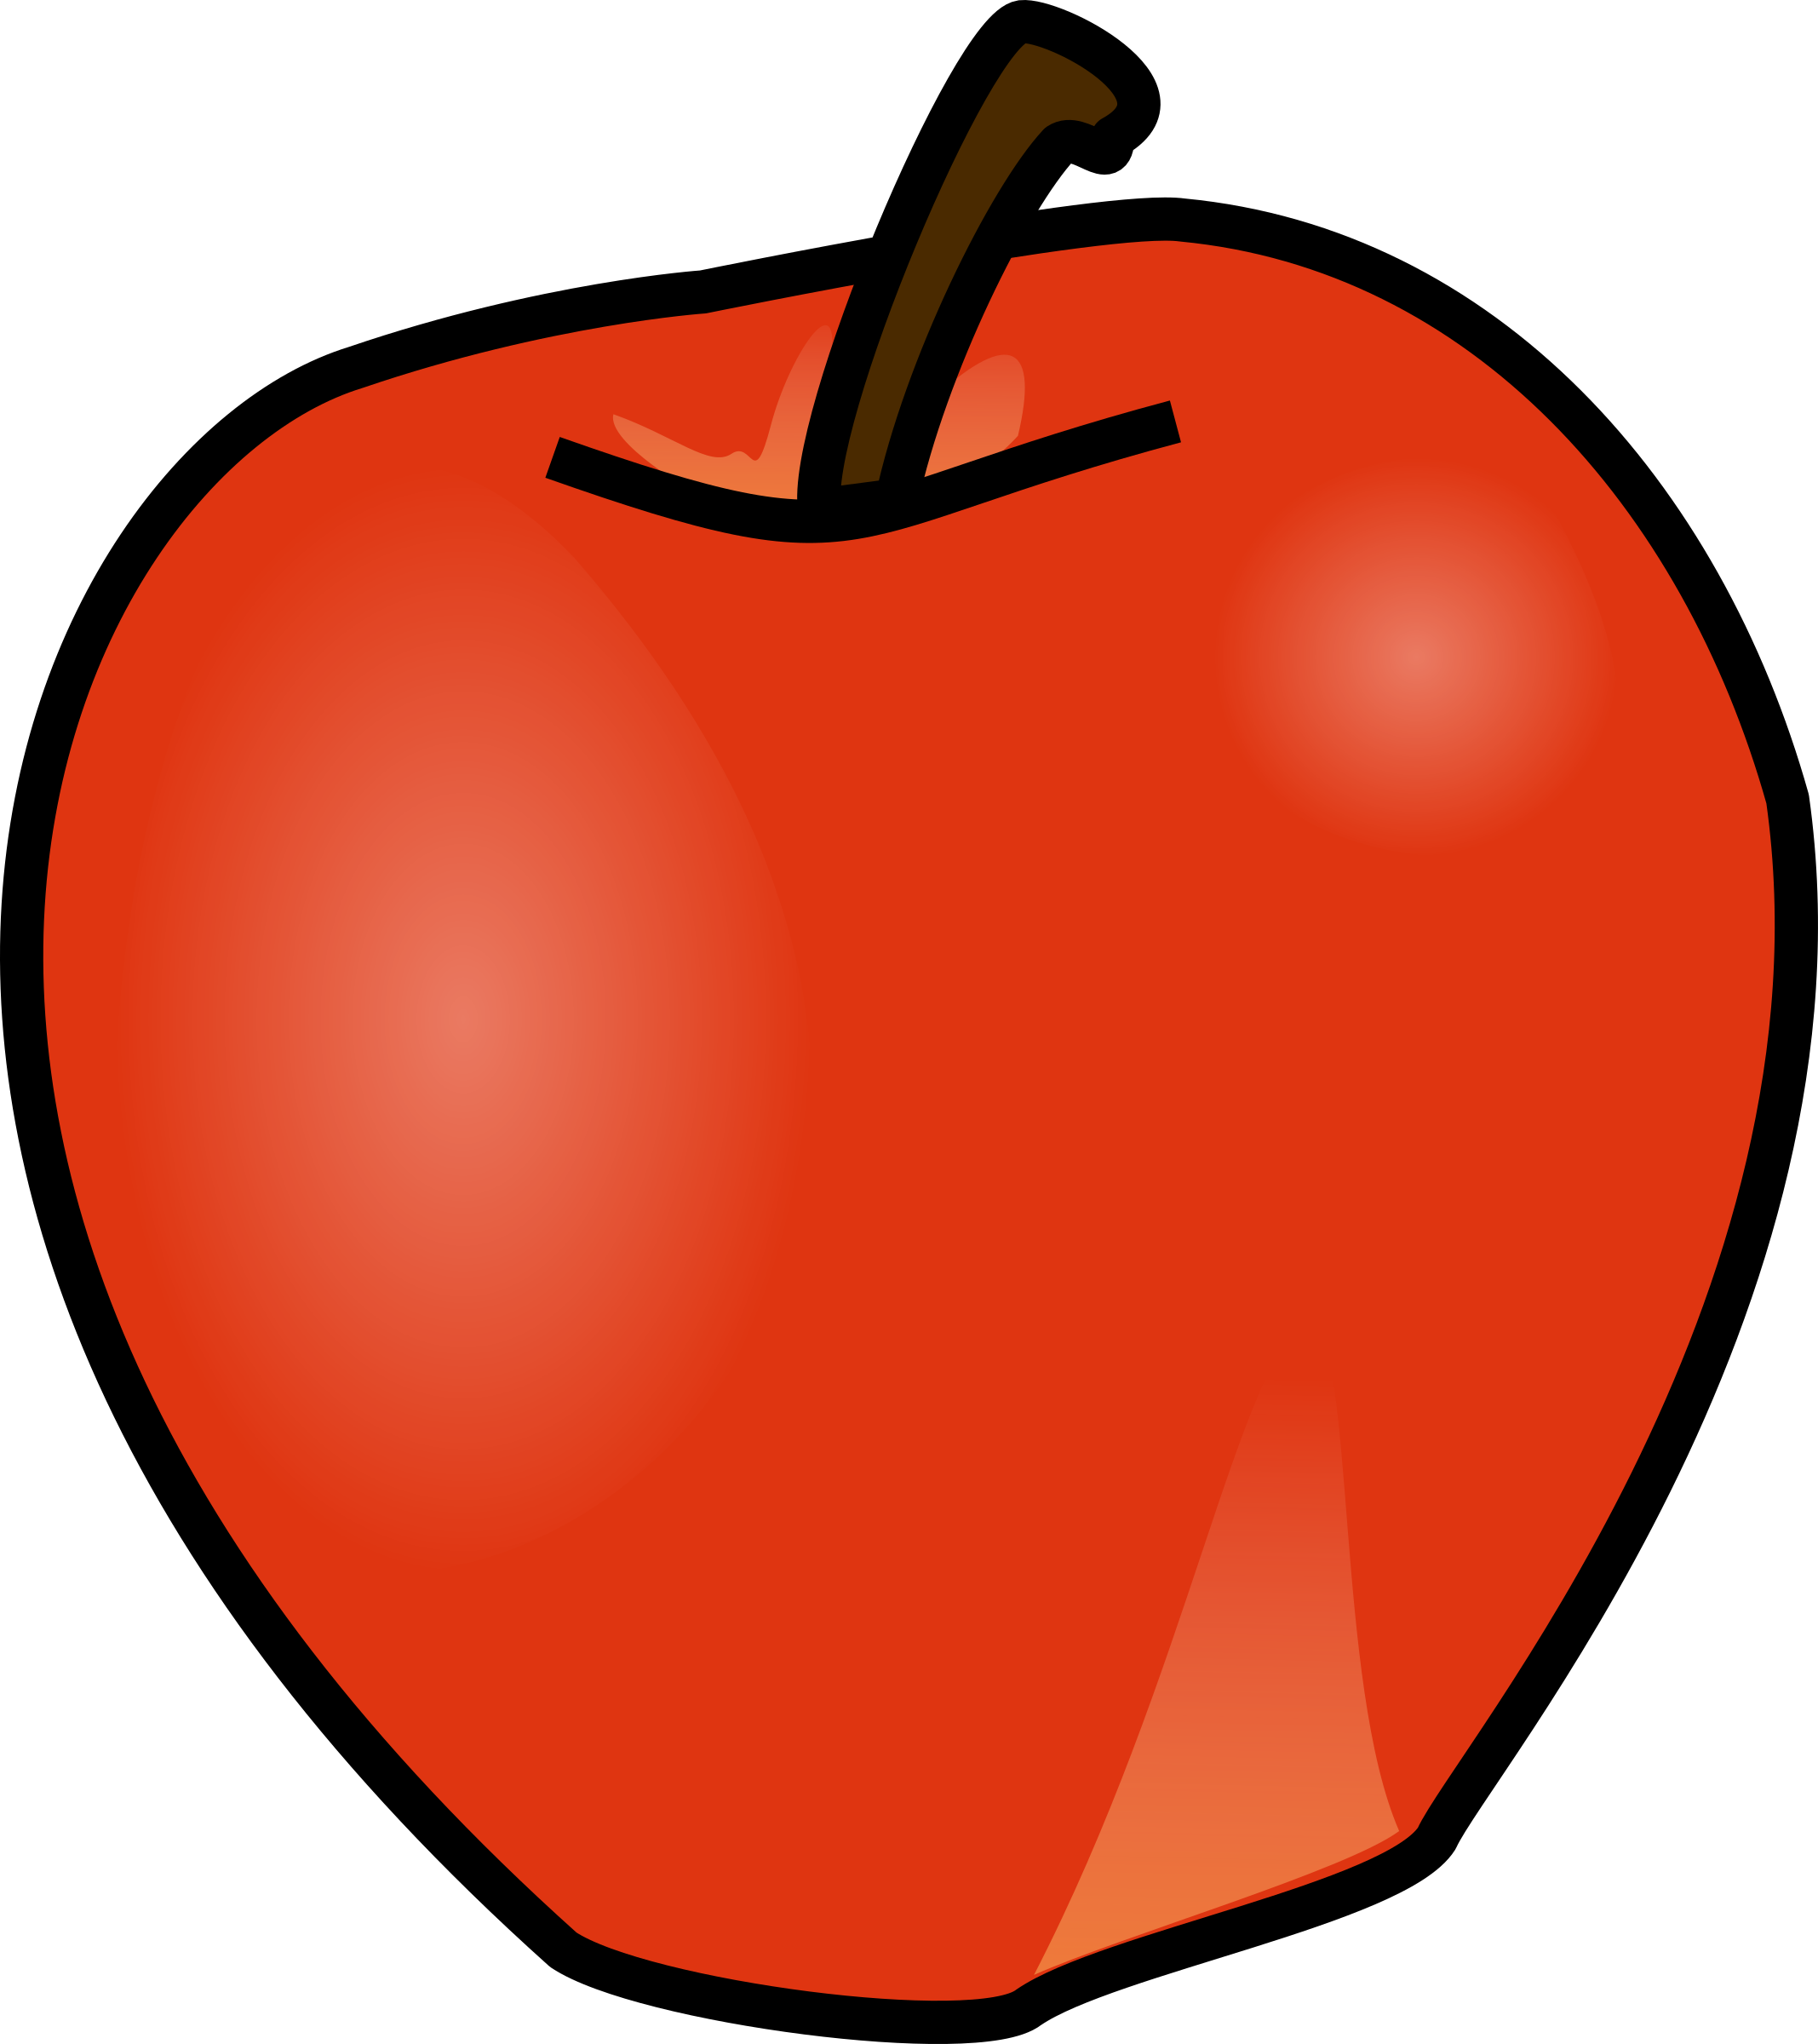 clipart picture of apple - photo #29